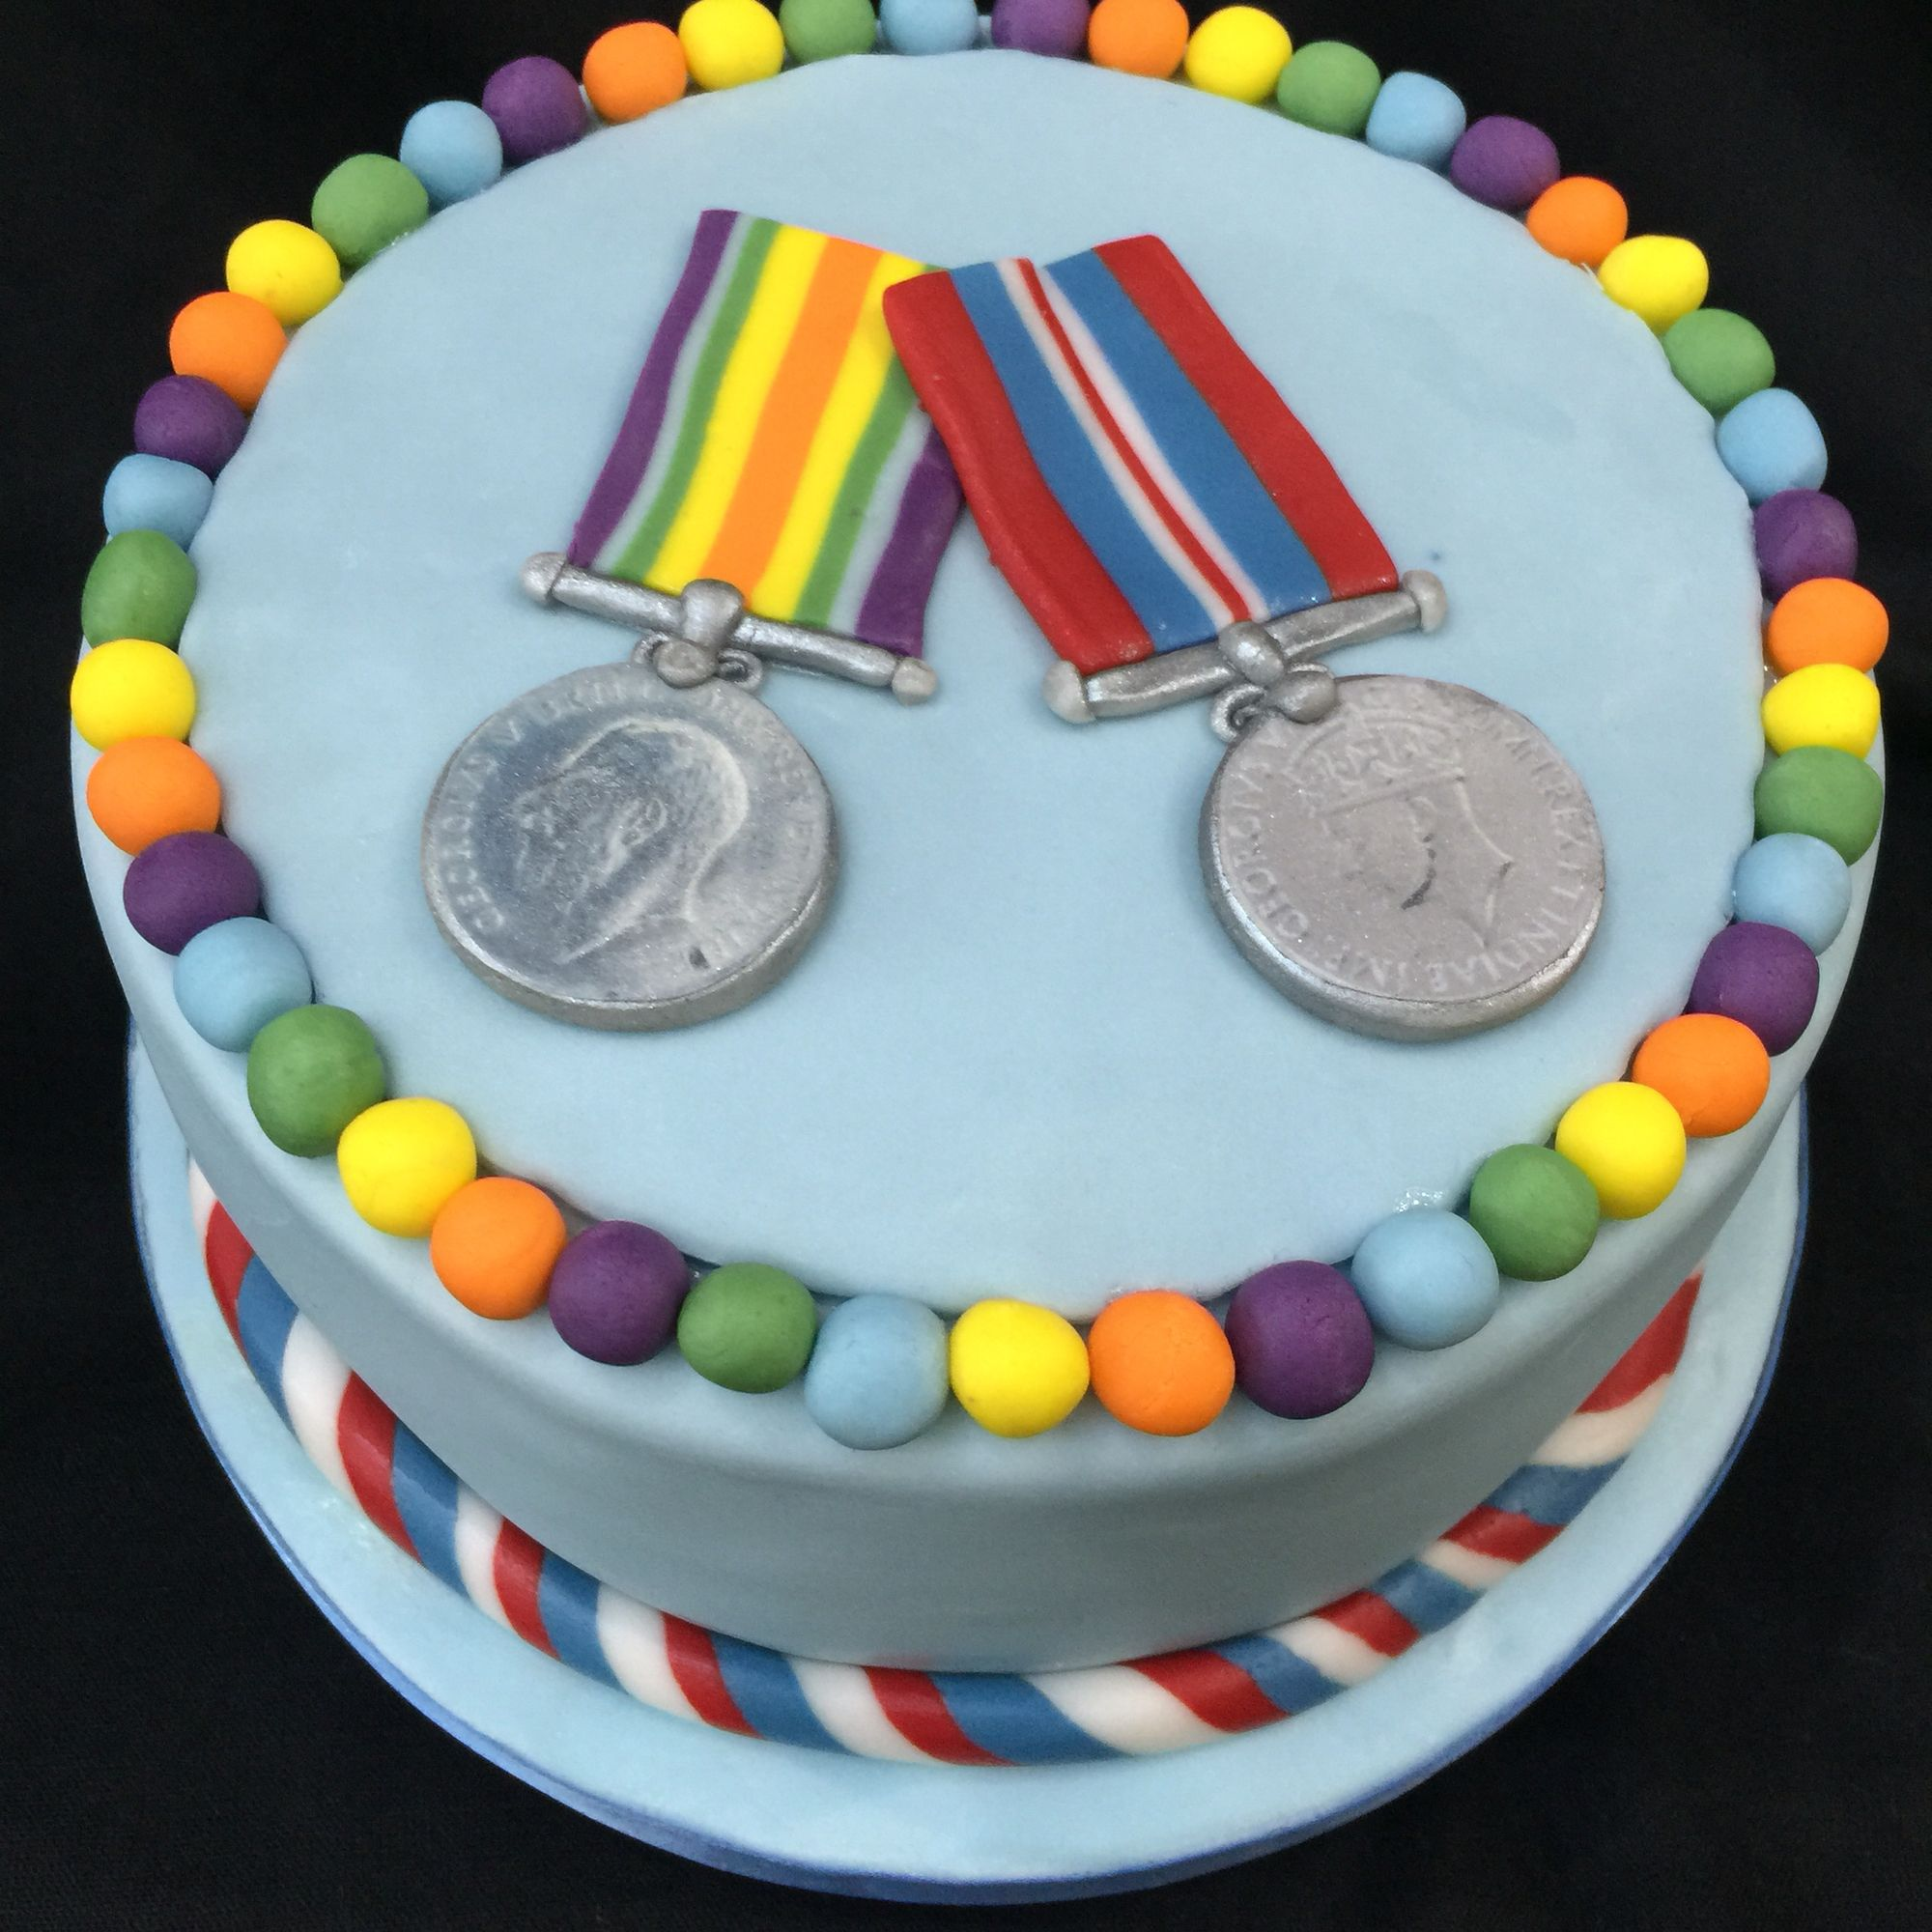 Light Fruit Cake With Fondant Decoration Of War Medals For